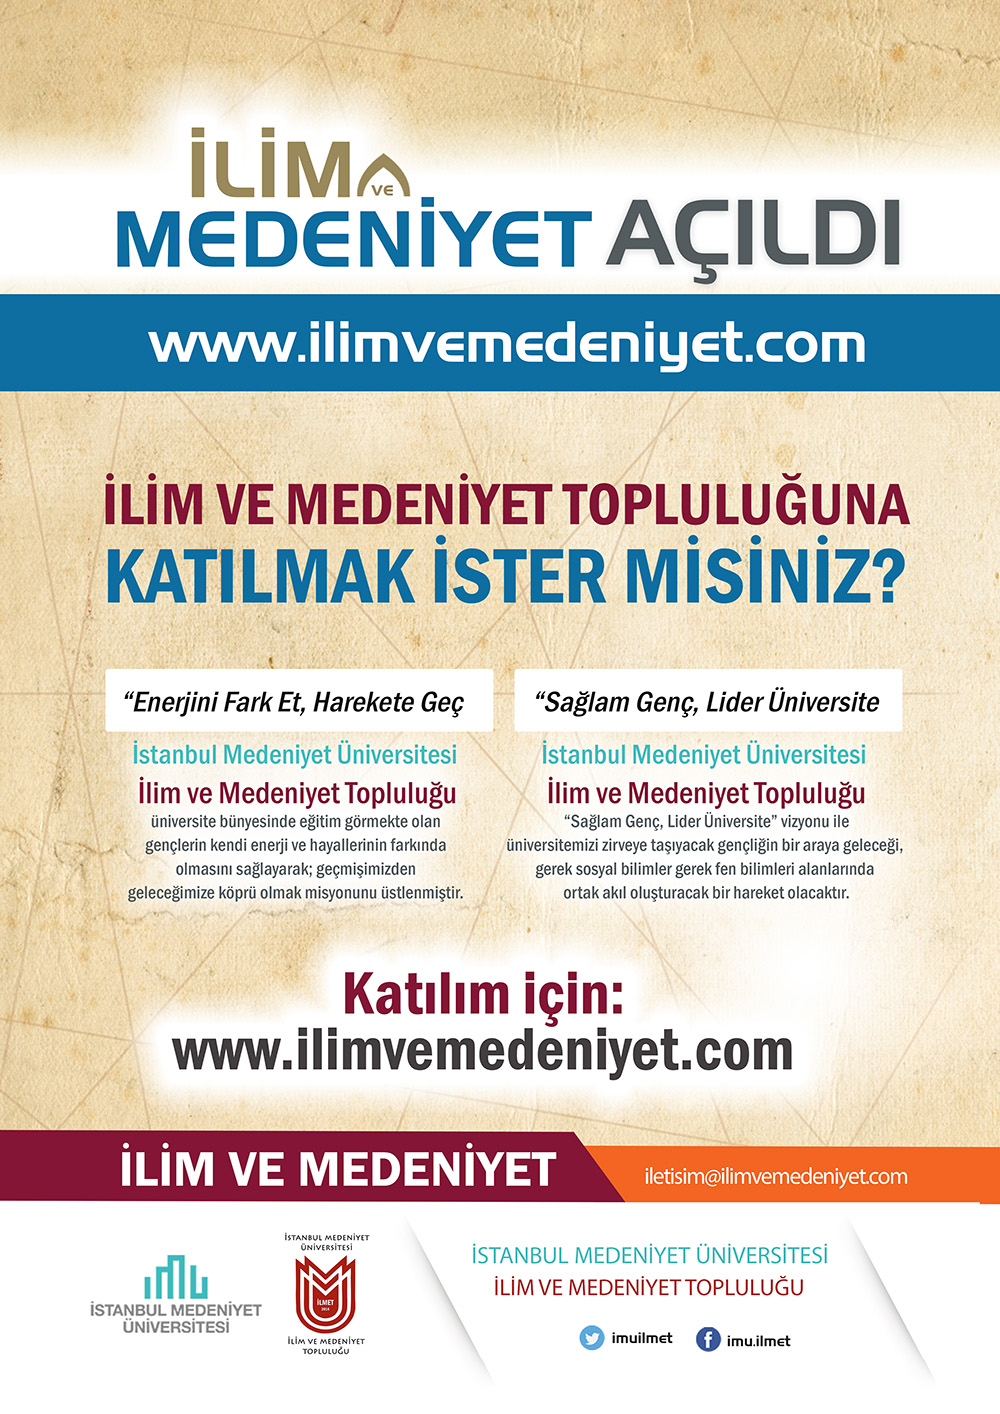 ilim-ve-medeniyet-acildi